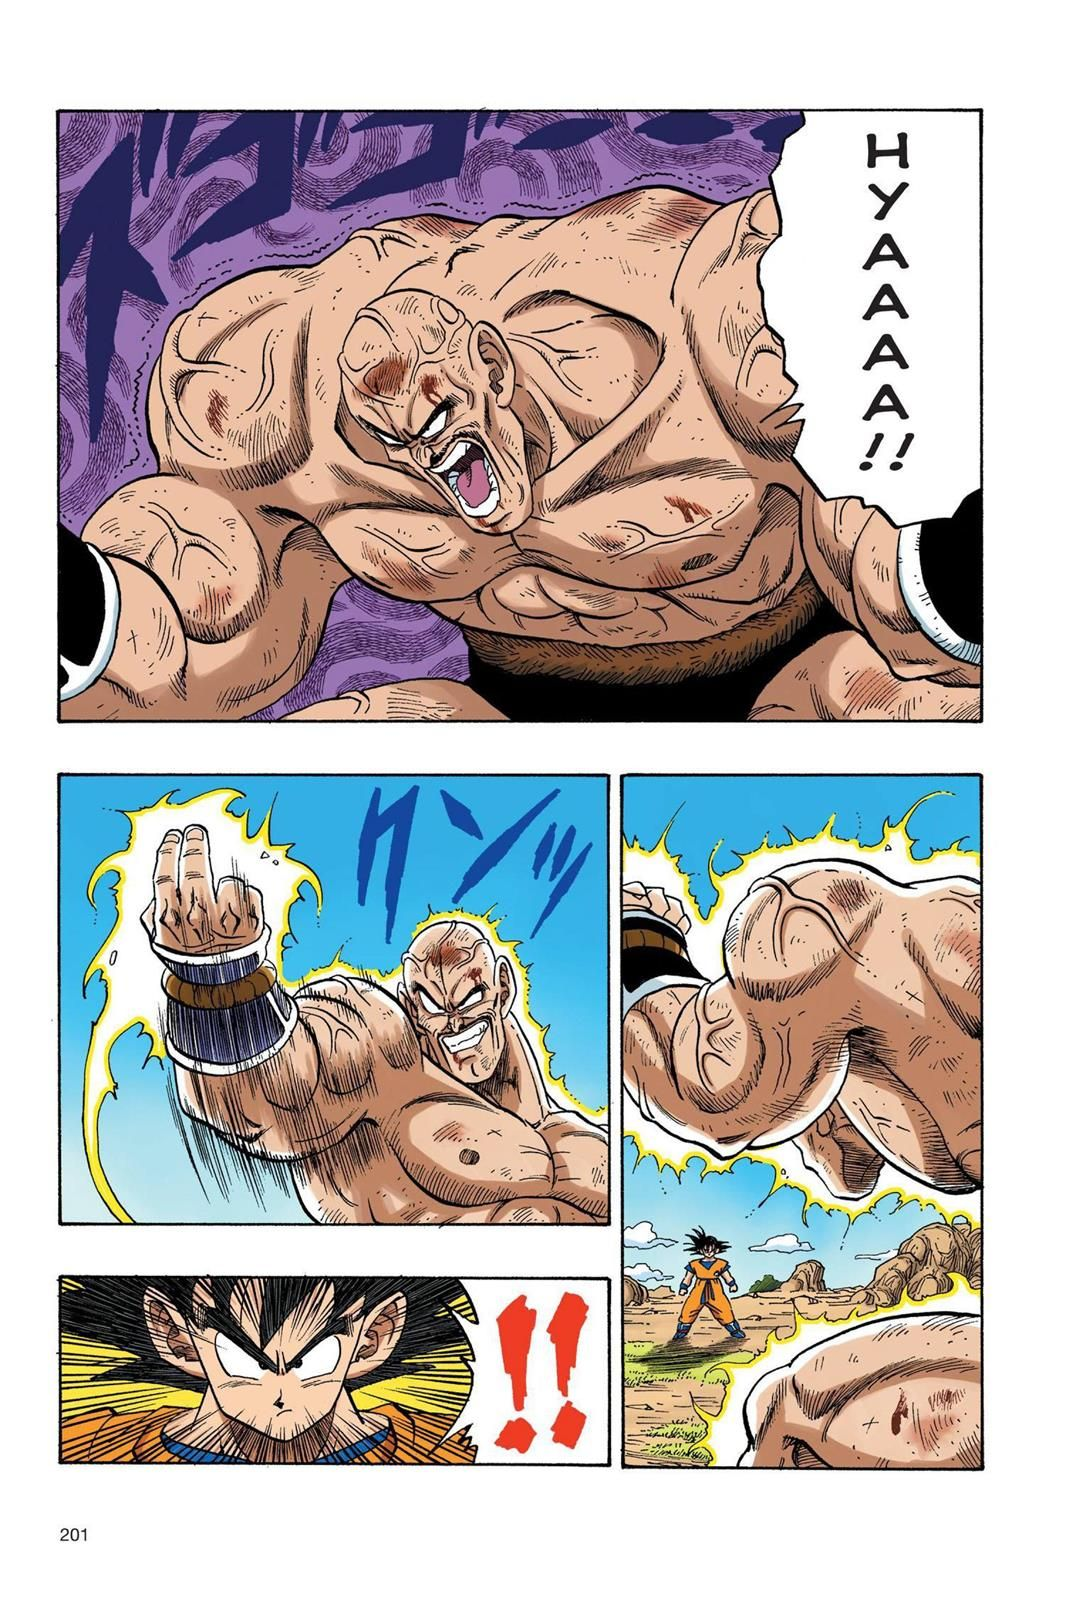 read dragon ball full color saiyan arc chapter 30 page 11 online